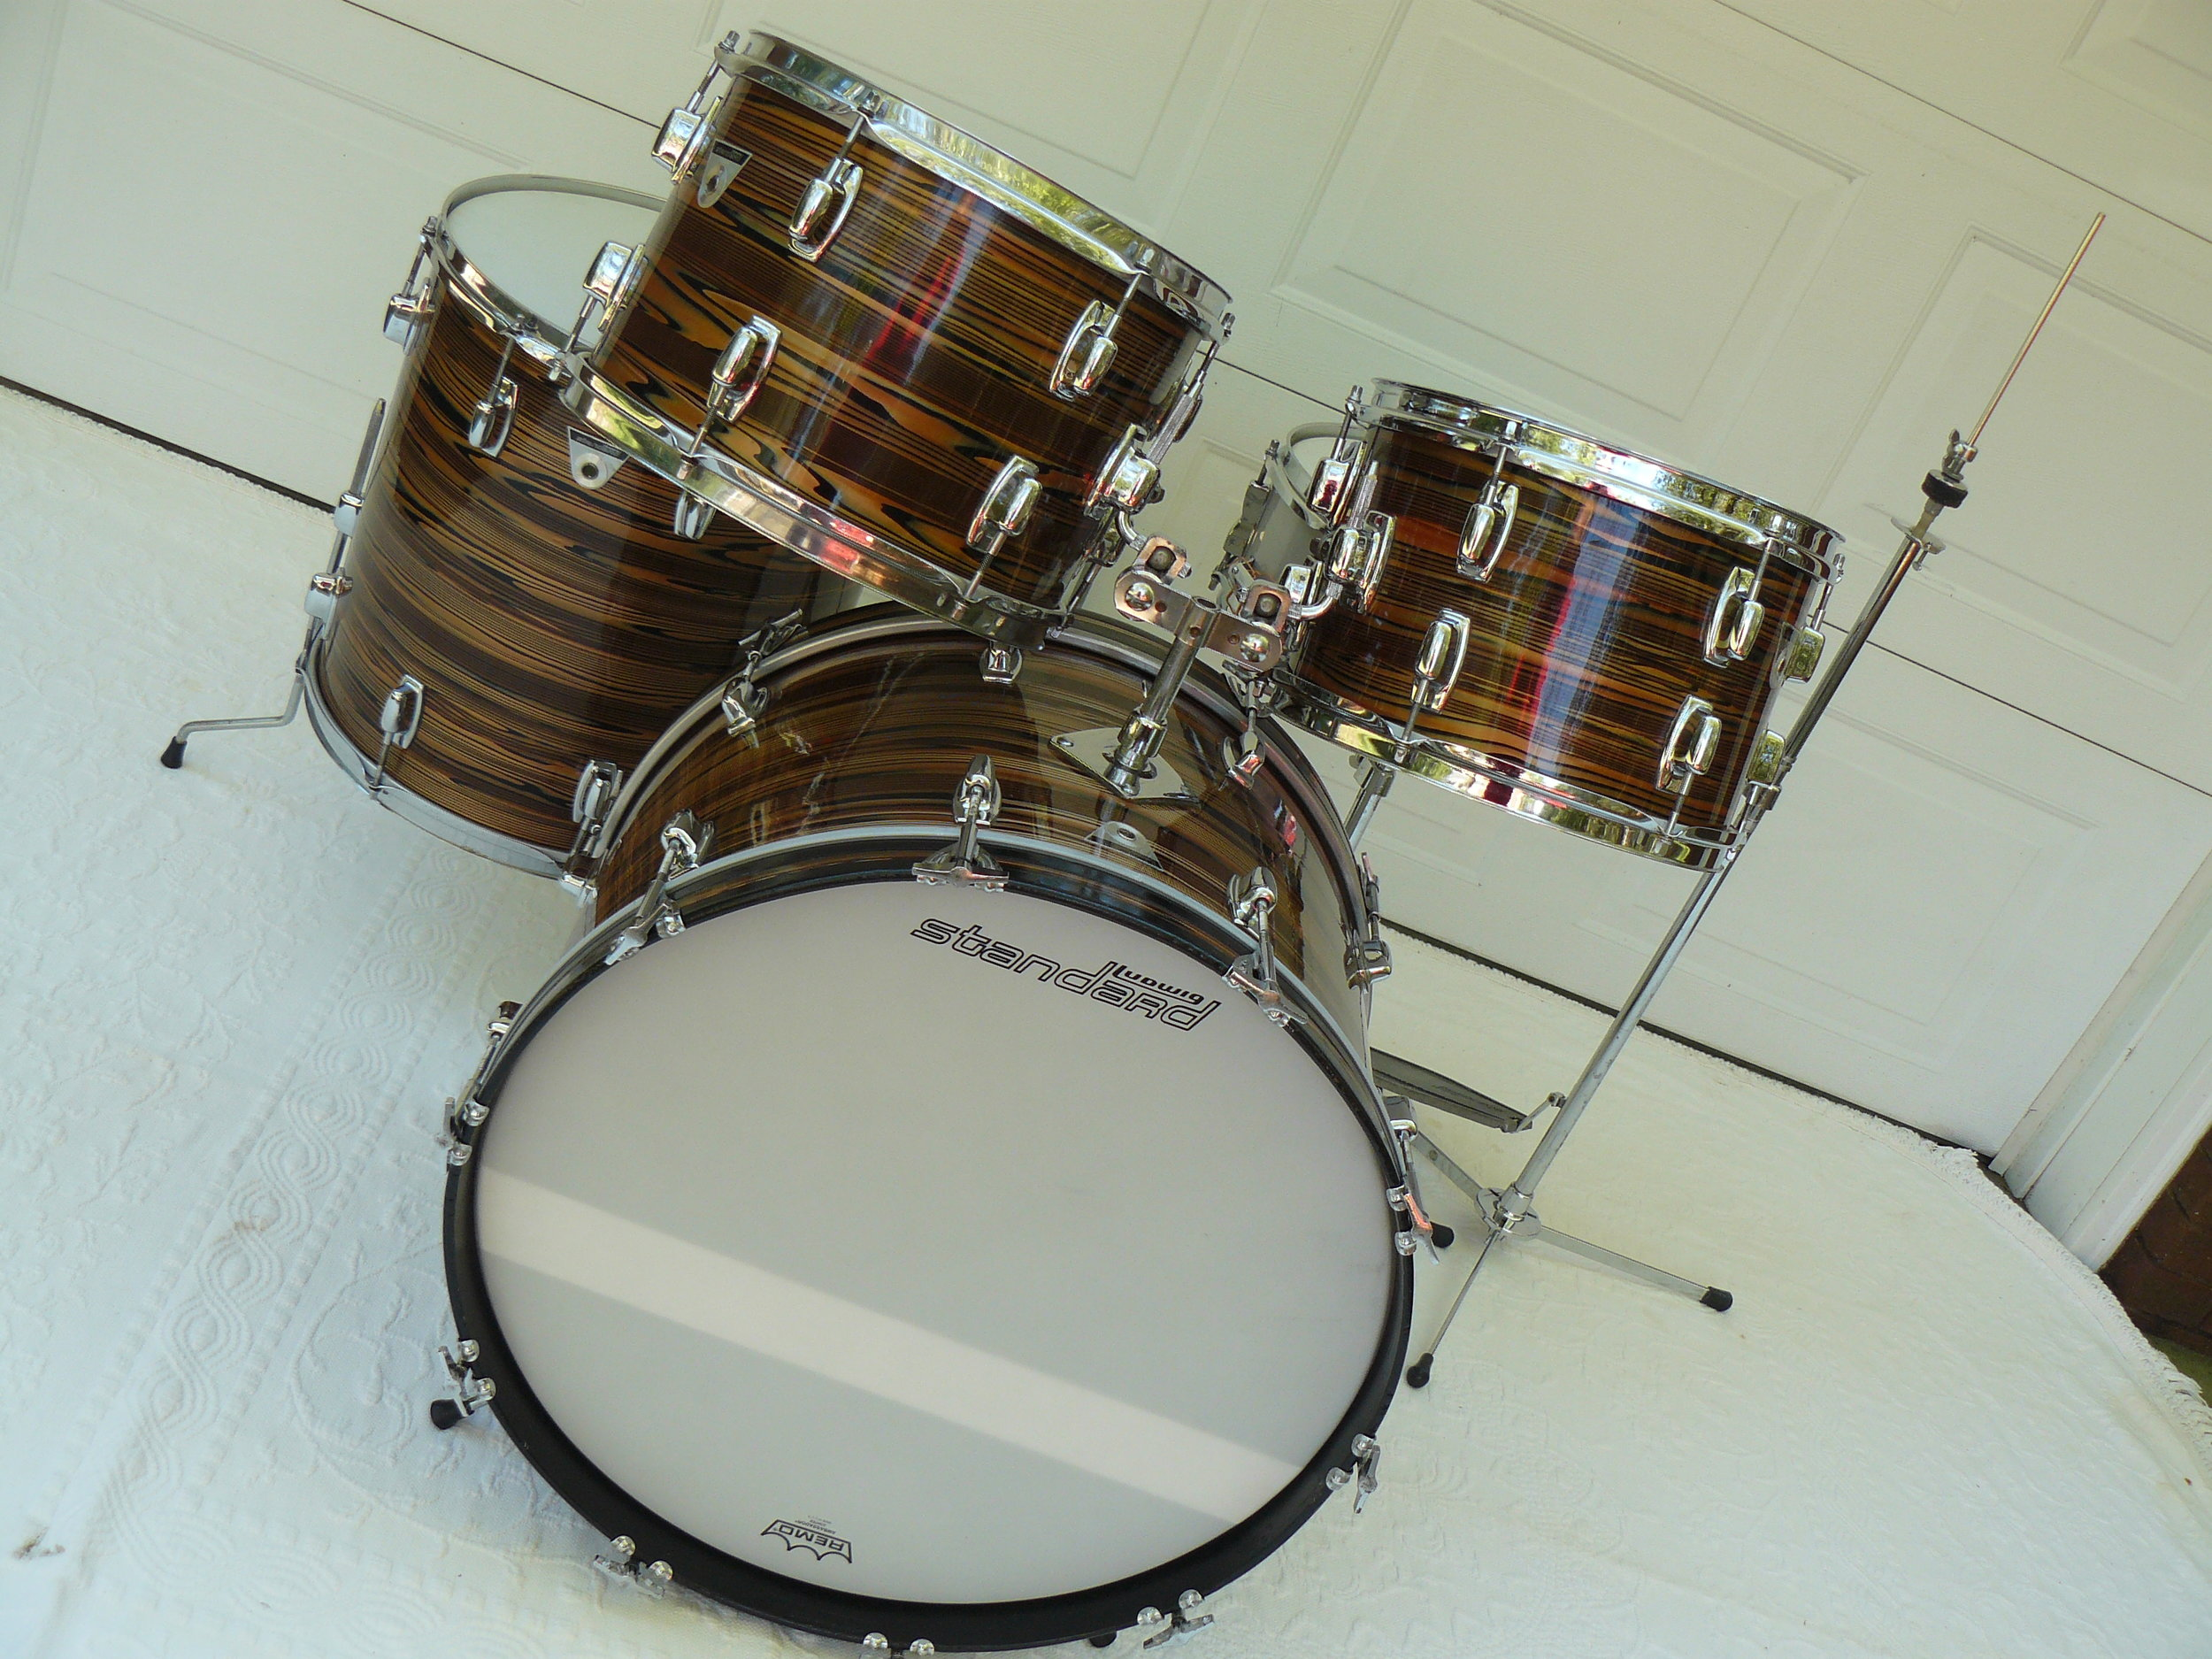 1970s Ludwig Standard S 330 drum set finished in bronze strata I am always on the hunt for a nice vintage drum set for sale  My friends  and family are always on the search also  I truly appreciate a call from  someone